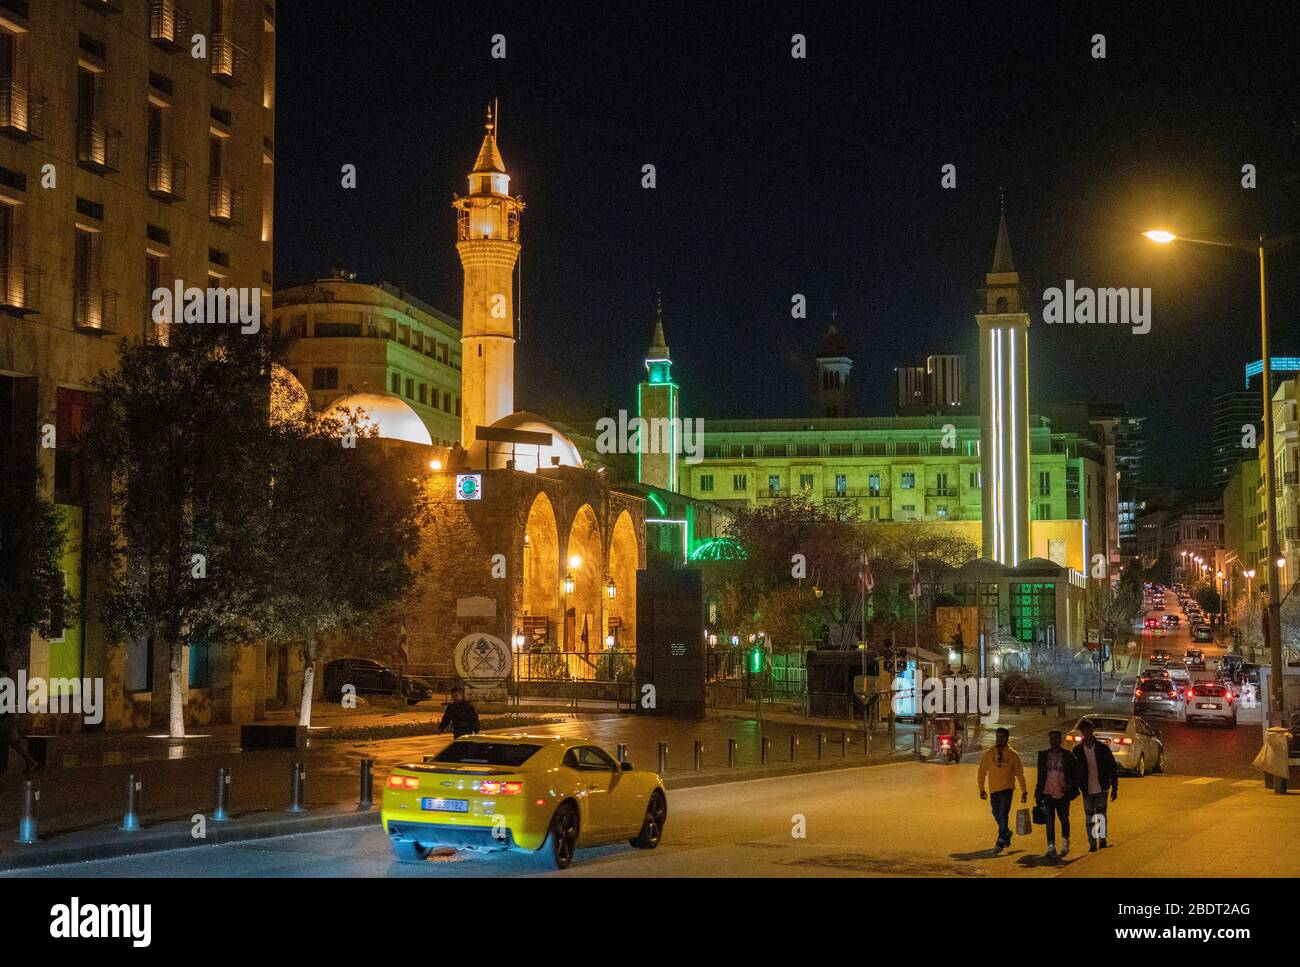 Al Omari grand Mosque on Waygand Street,Central Beirut Stock Photo